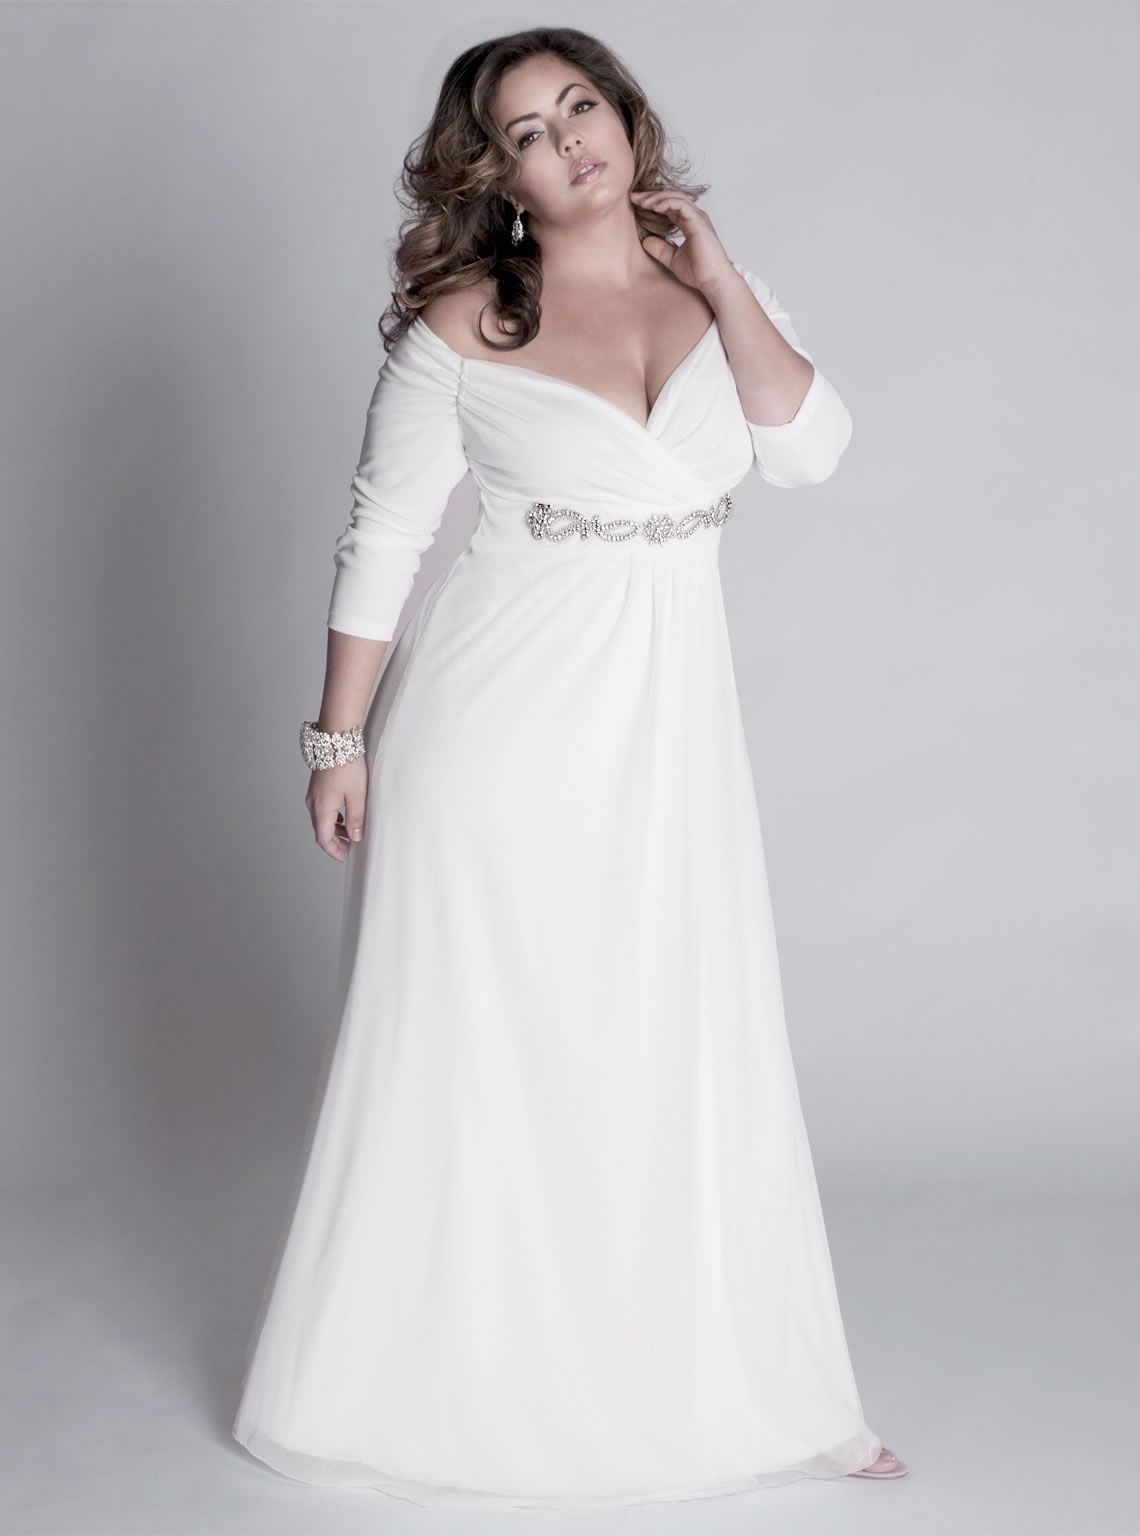 Ideas Plus Size Empire Waist Wedding Dress plus size empire waist wedding dress patterns bridesmaid dresses mia bella bridal